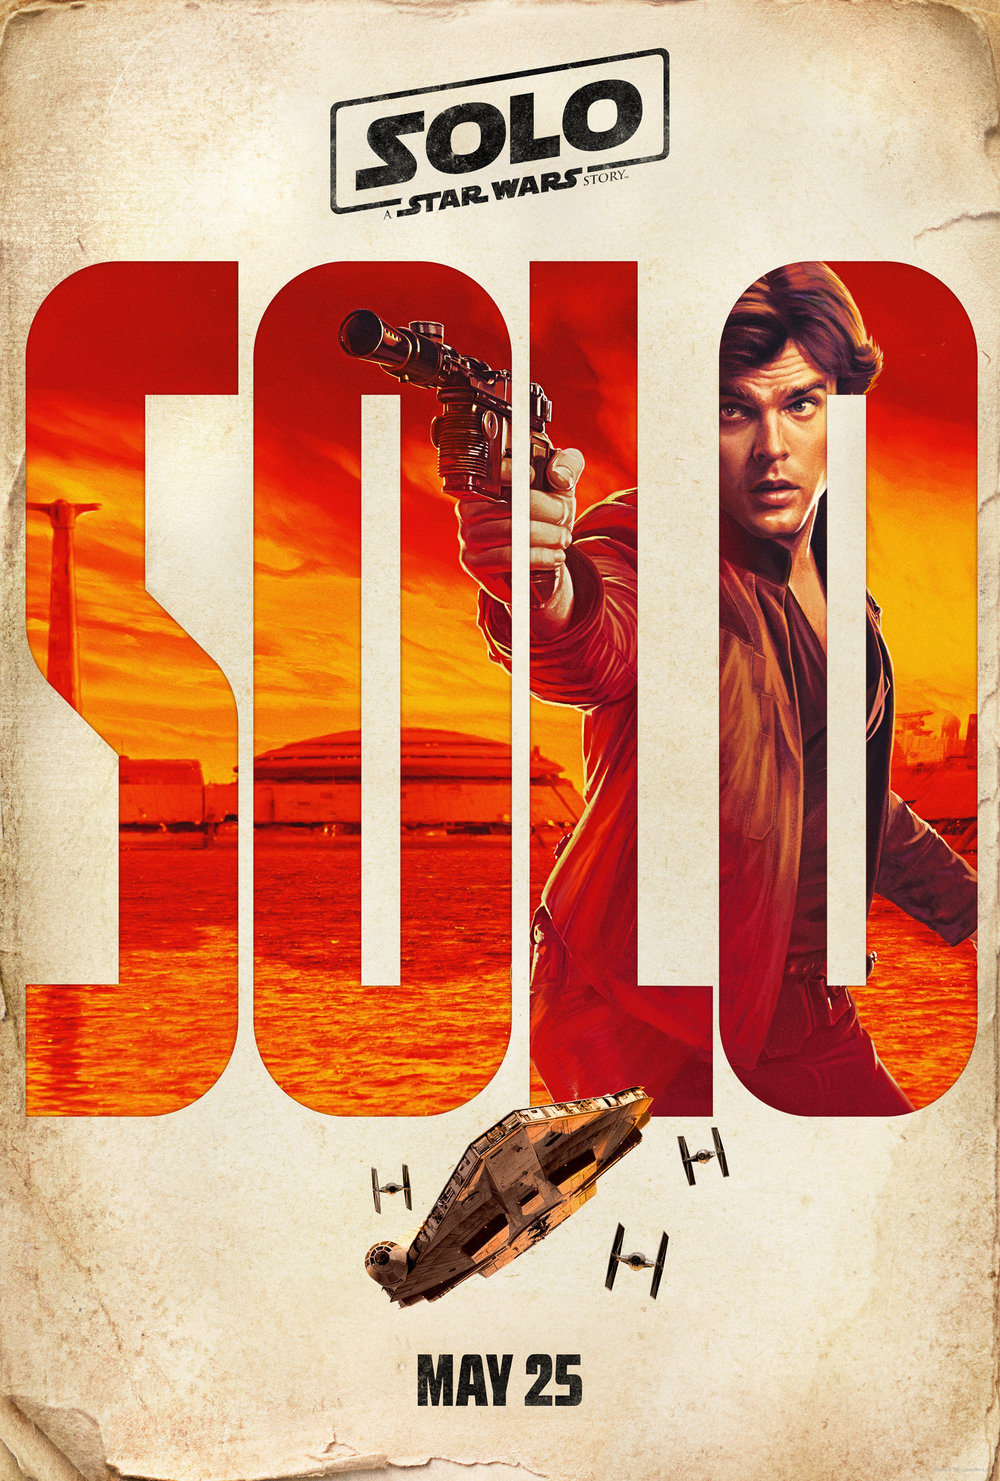 fun-series-of-character-posters-for-solo-a-star-wars-story1